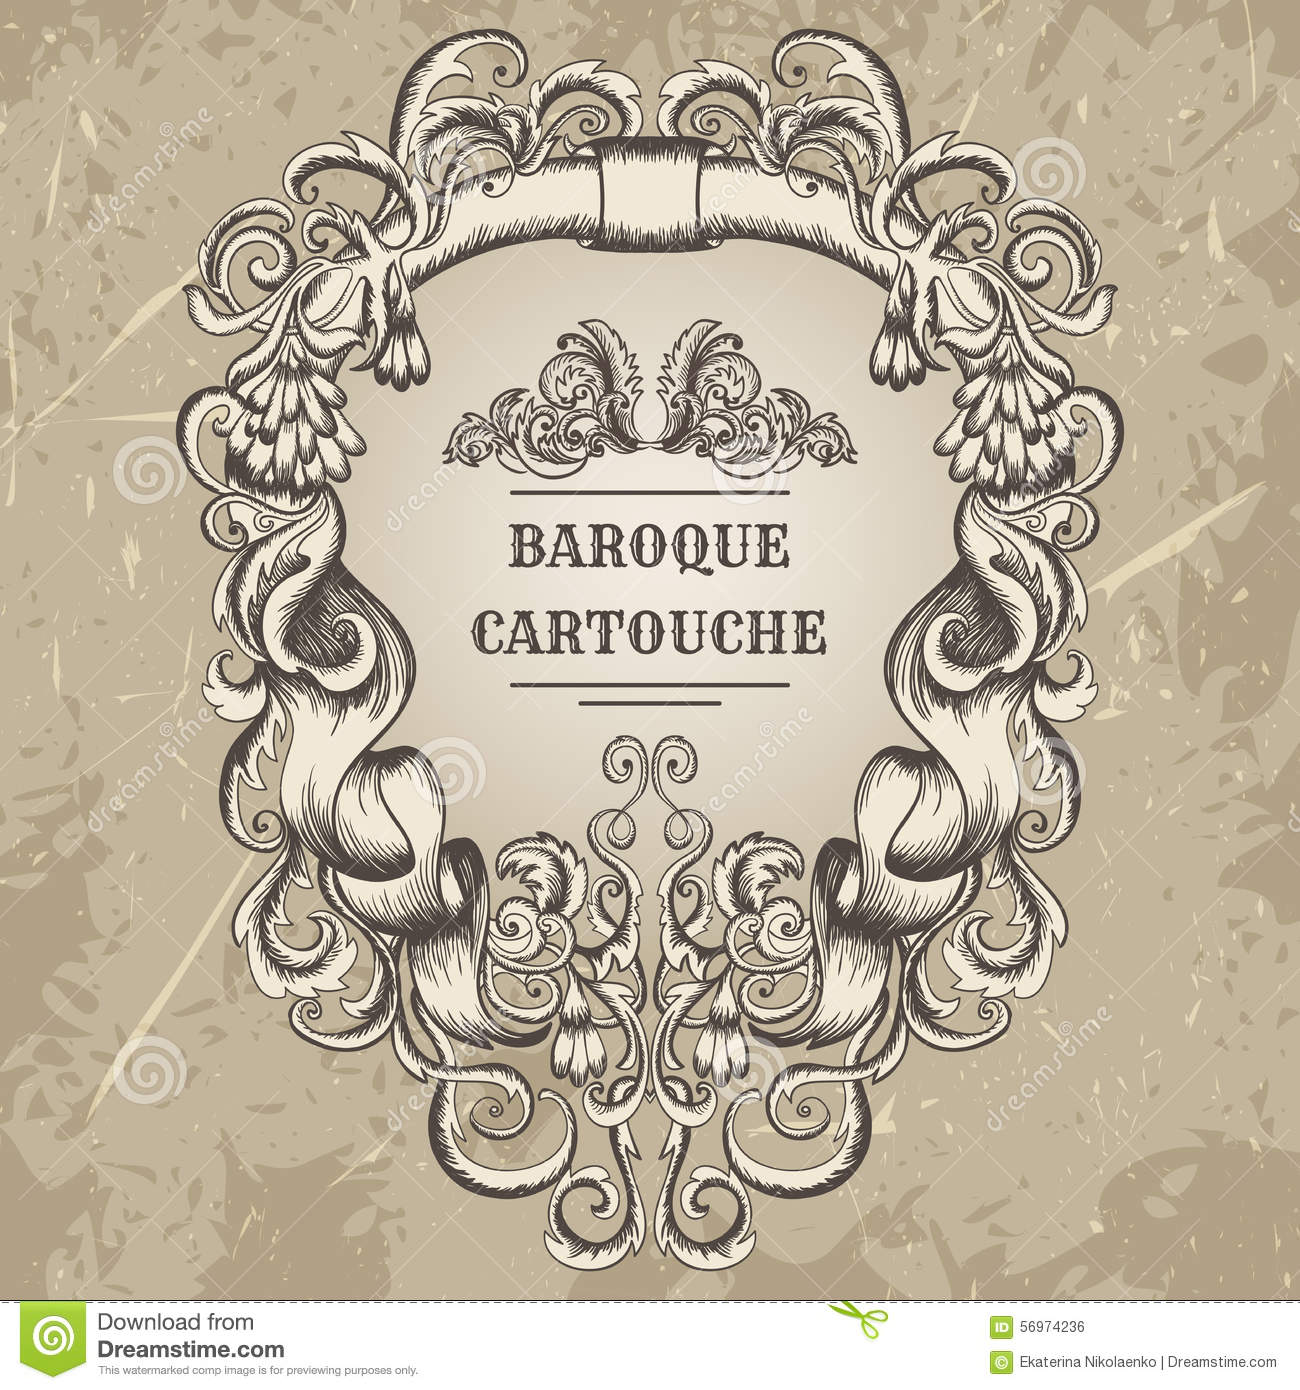 Antique and baroque cartouche ornaments frame vintage for Baroque design elements